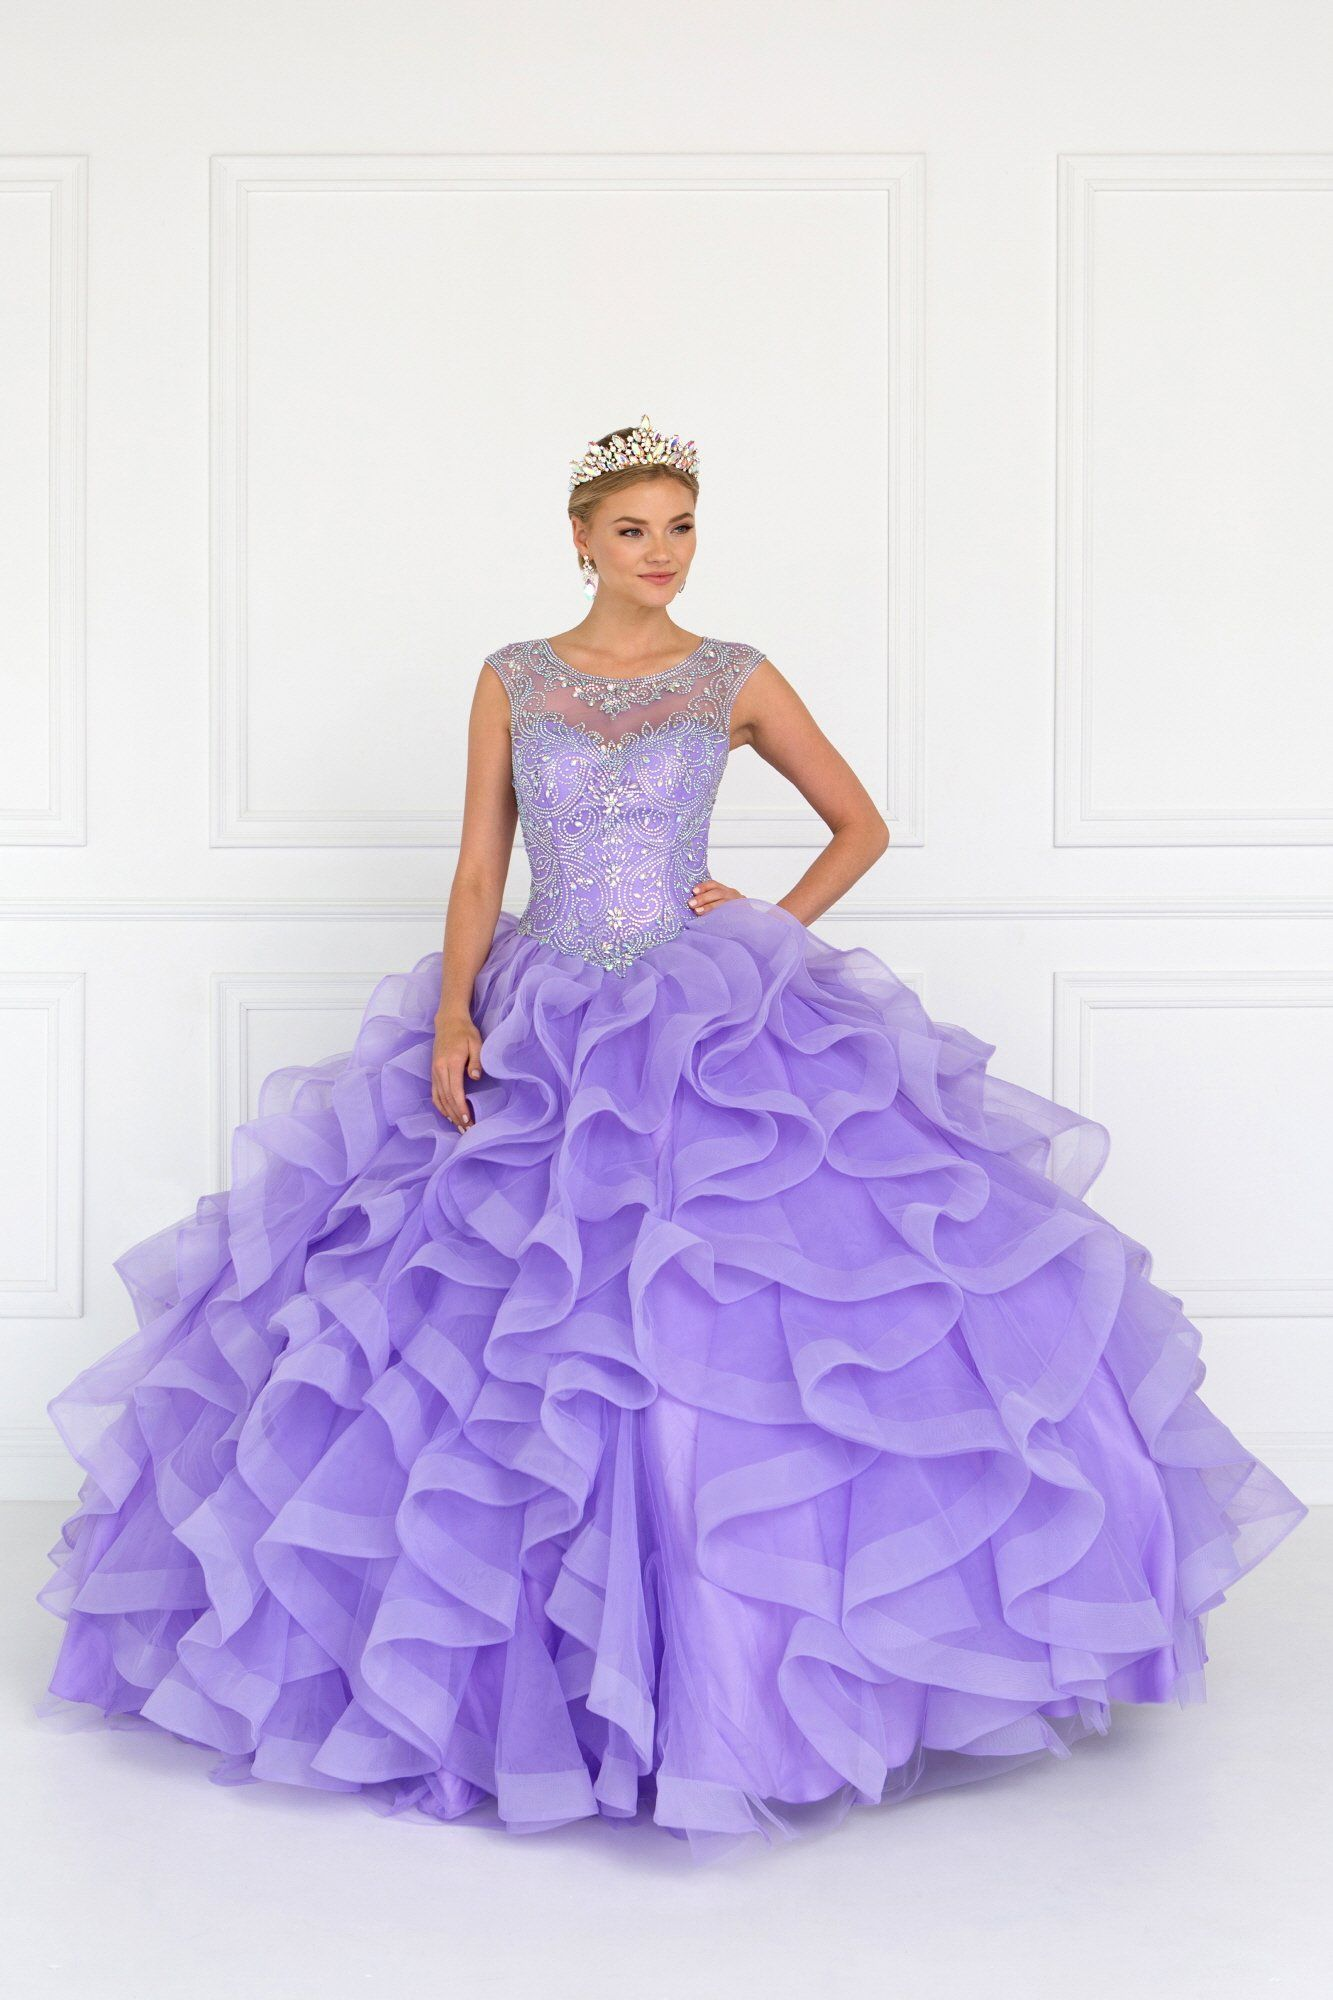 4b5ebfddadf Be the belle of the ball in a beautiful quinceanera dress with sheer  illusion cap sleeve. A purple quince dress with lace up corset back and  puffy